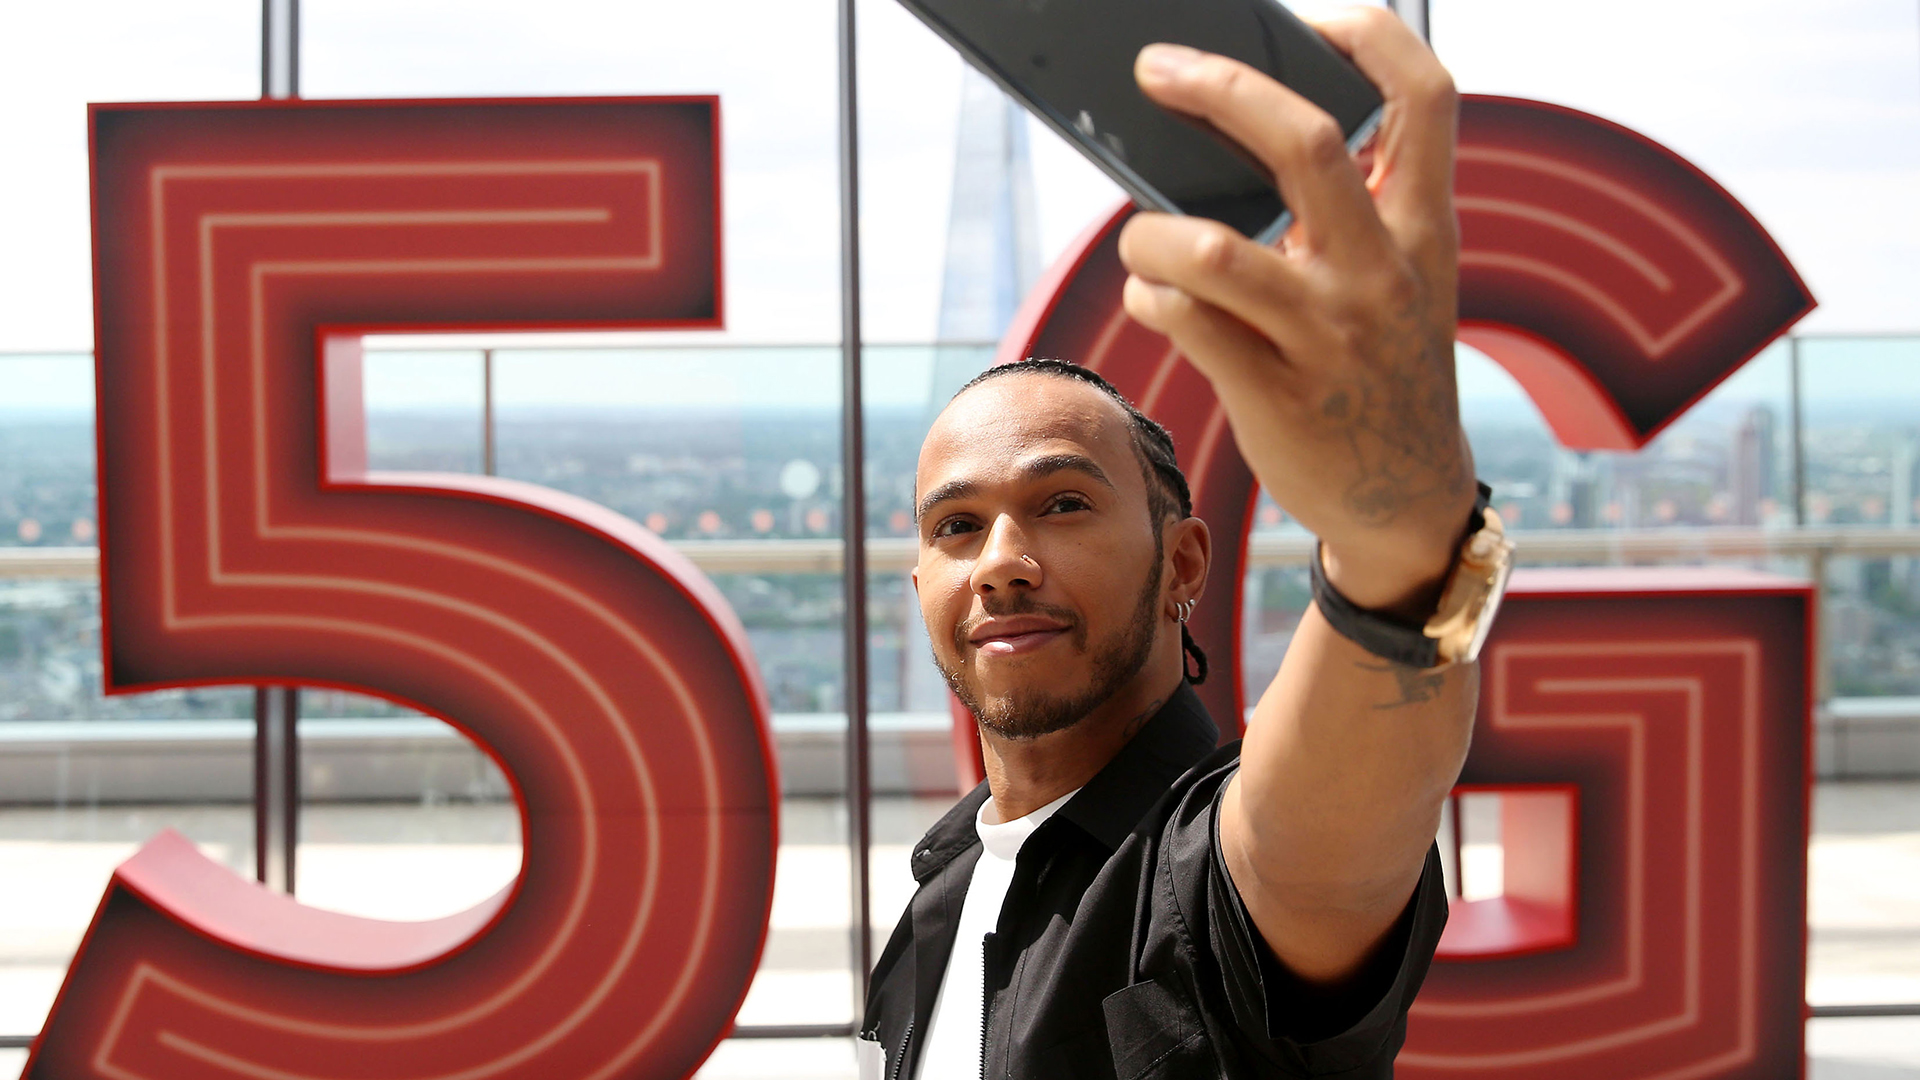 Vodafone goes live with Ericsson 5G technology in London